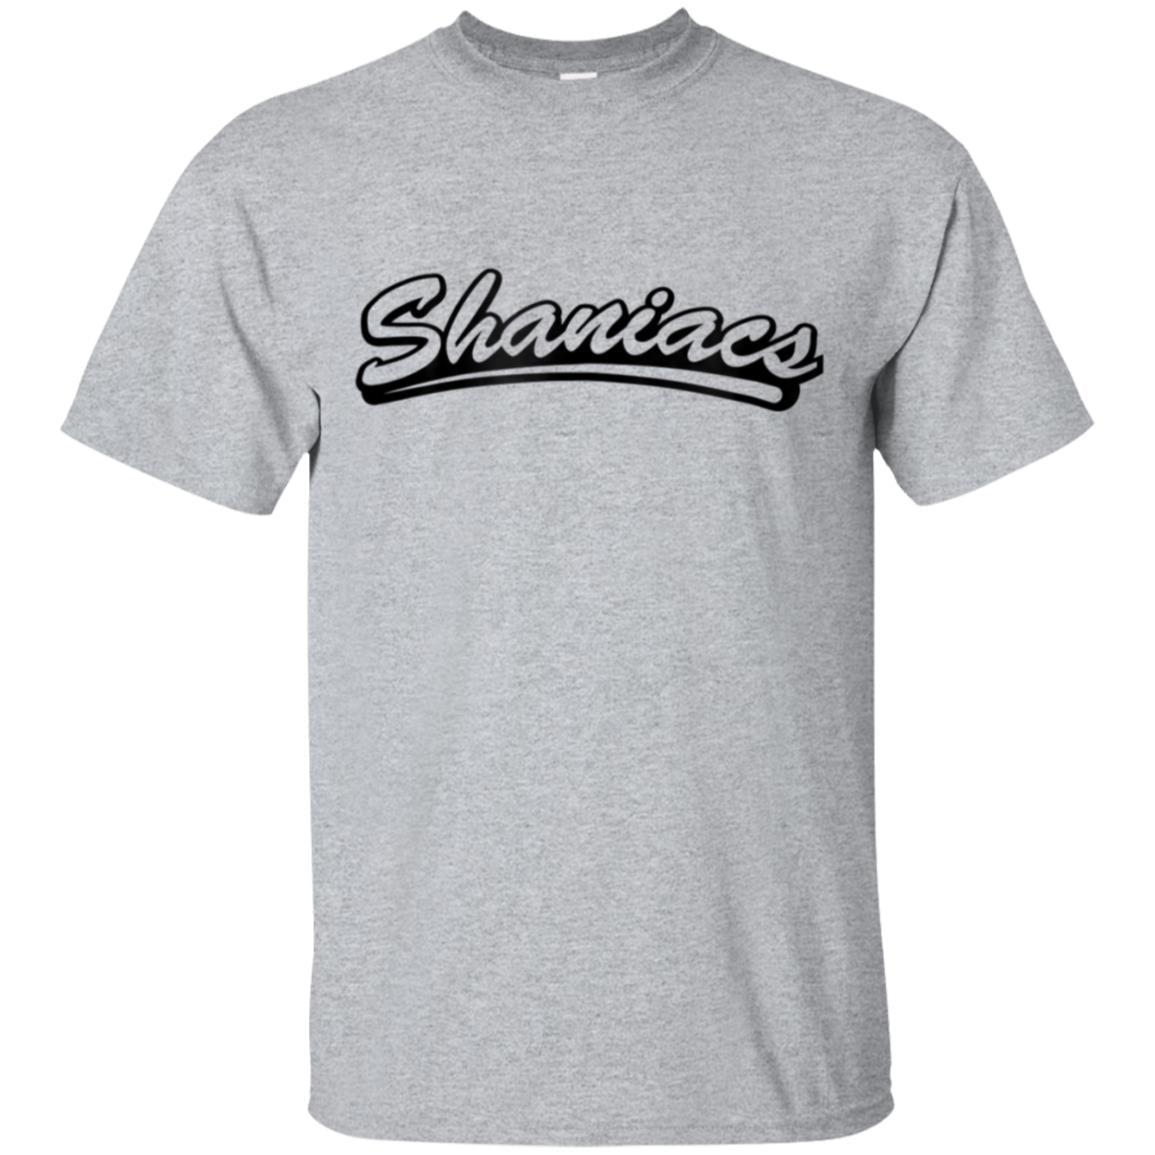 BuzzFeed Unsolved Team Shaniacs T-Shirt 99promocode